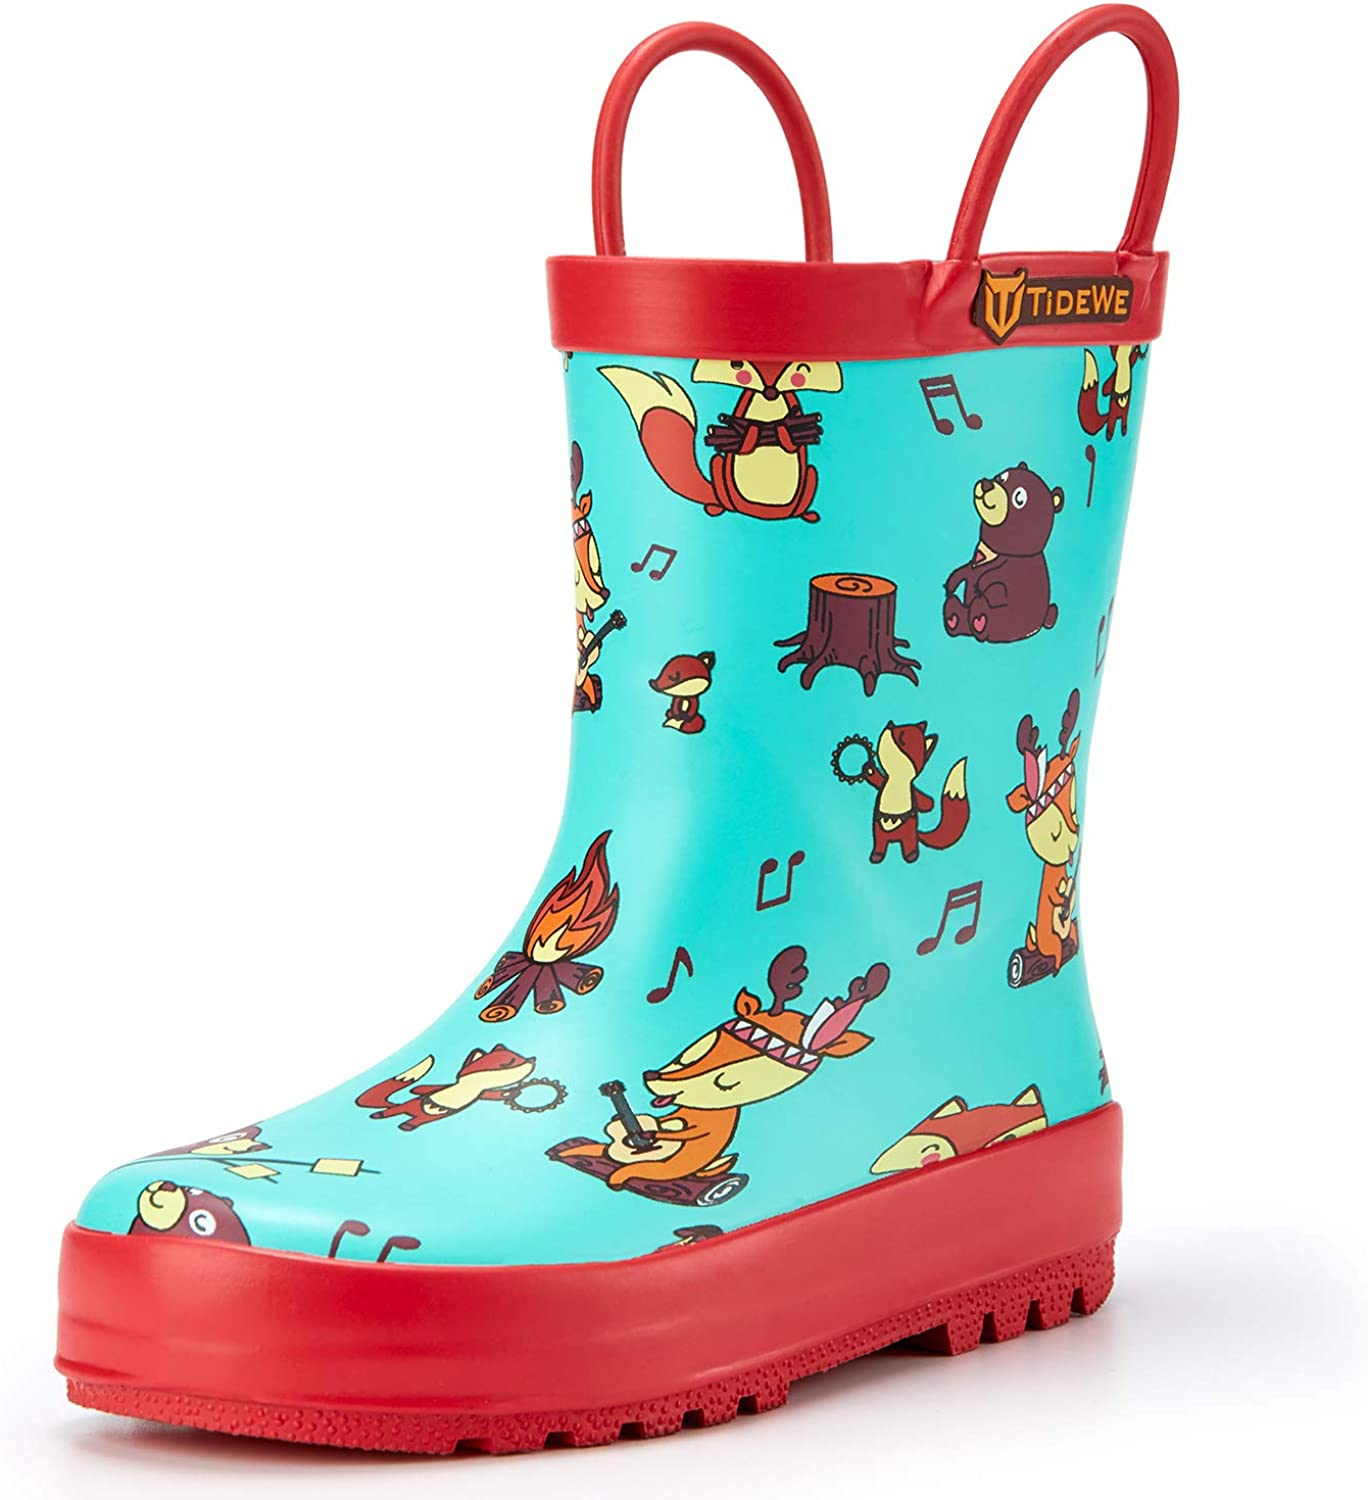 TideWe Rain Boots for Kids and Toddlers